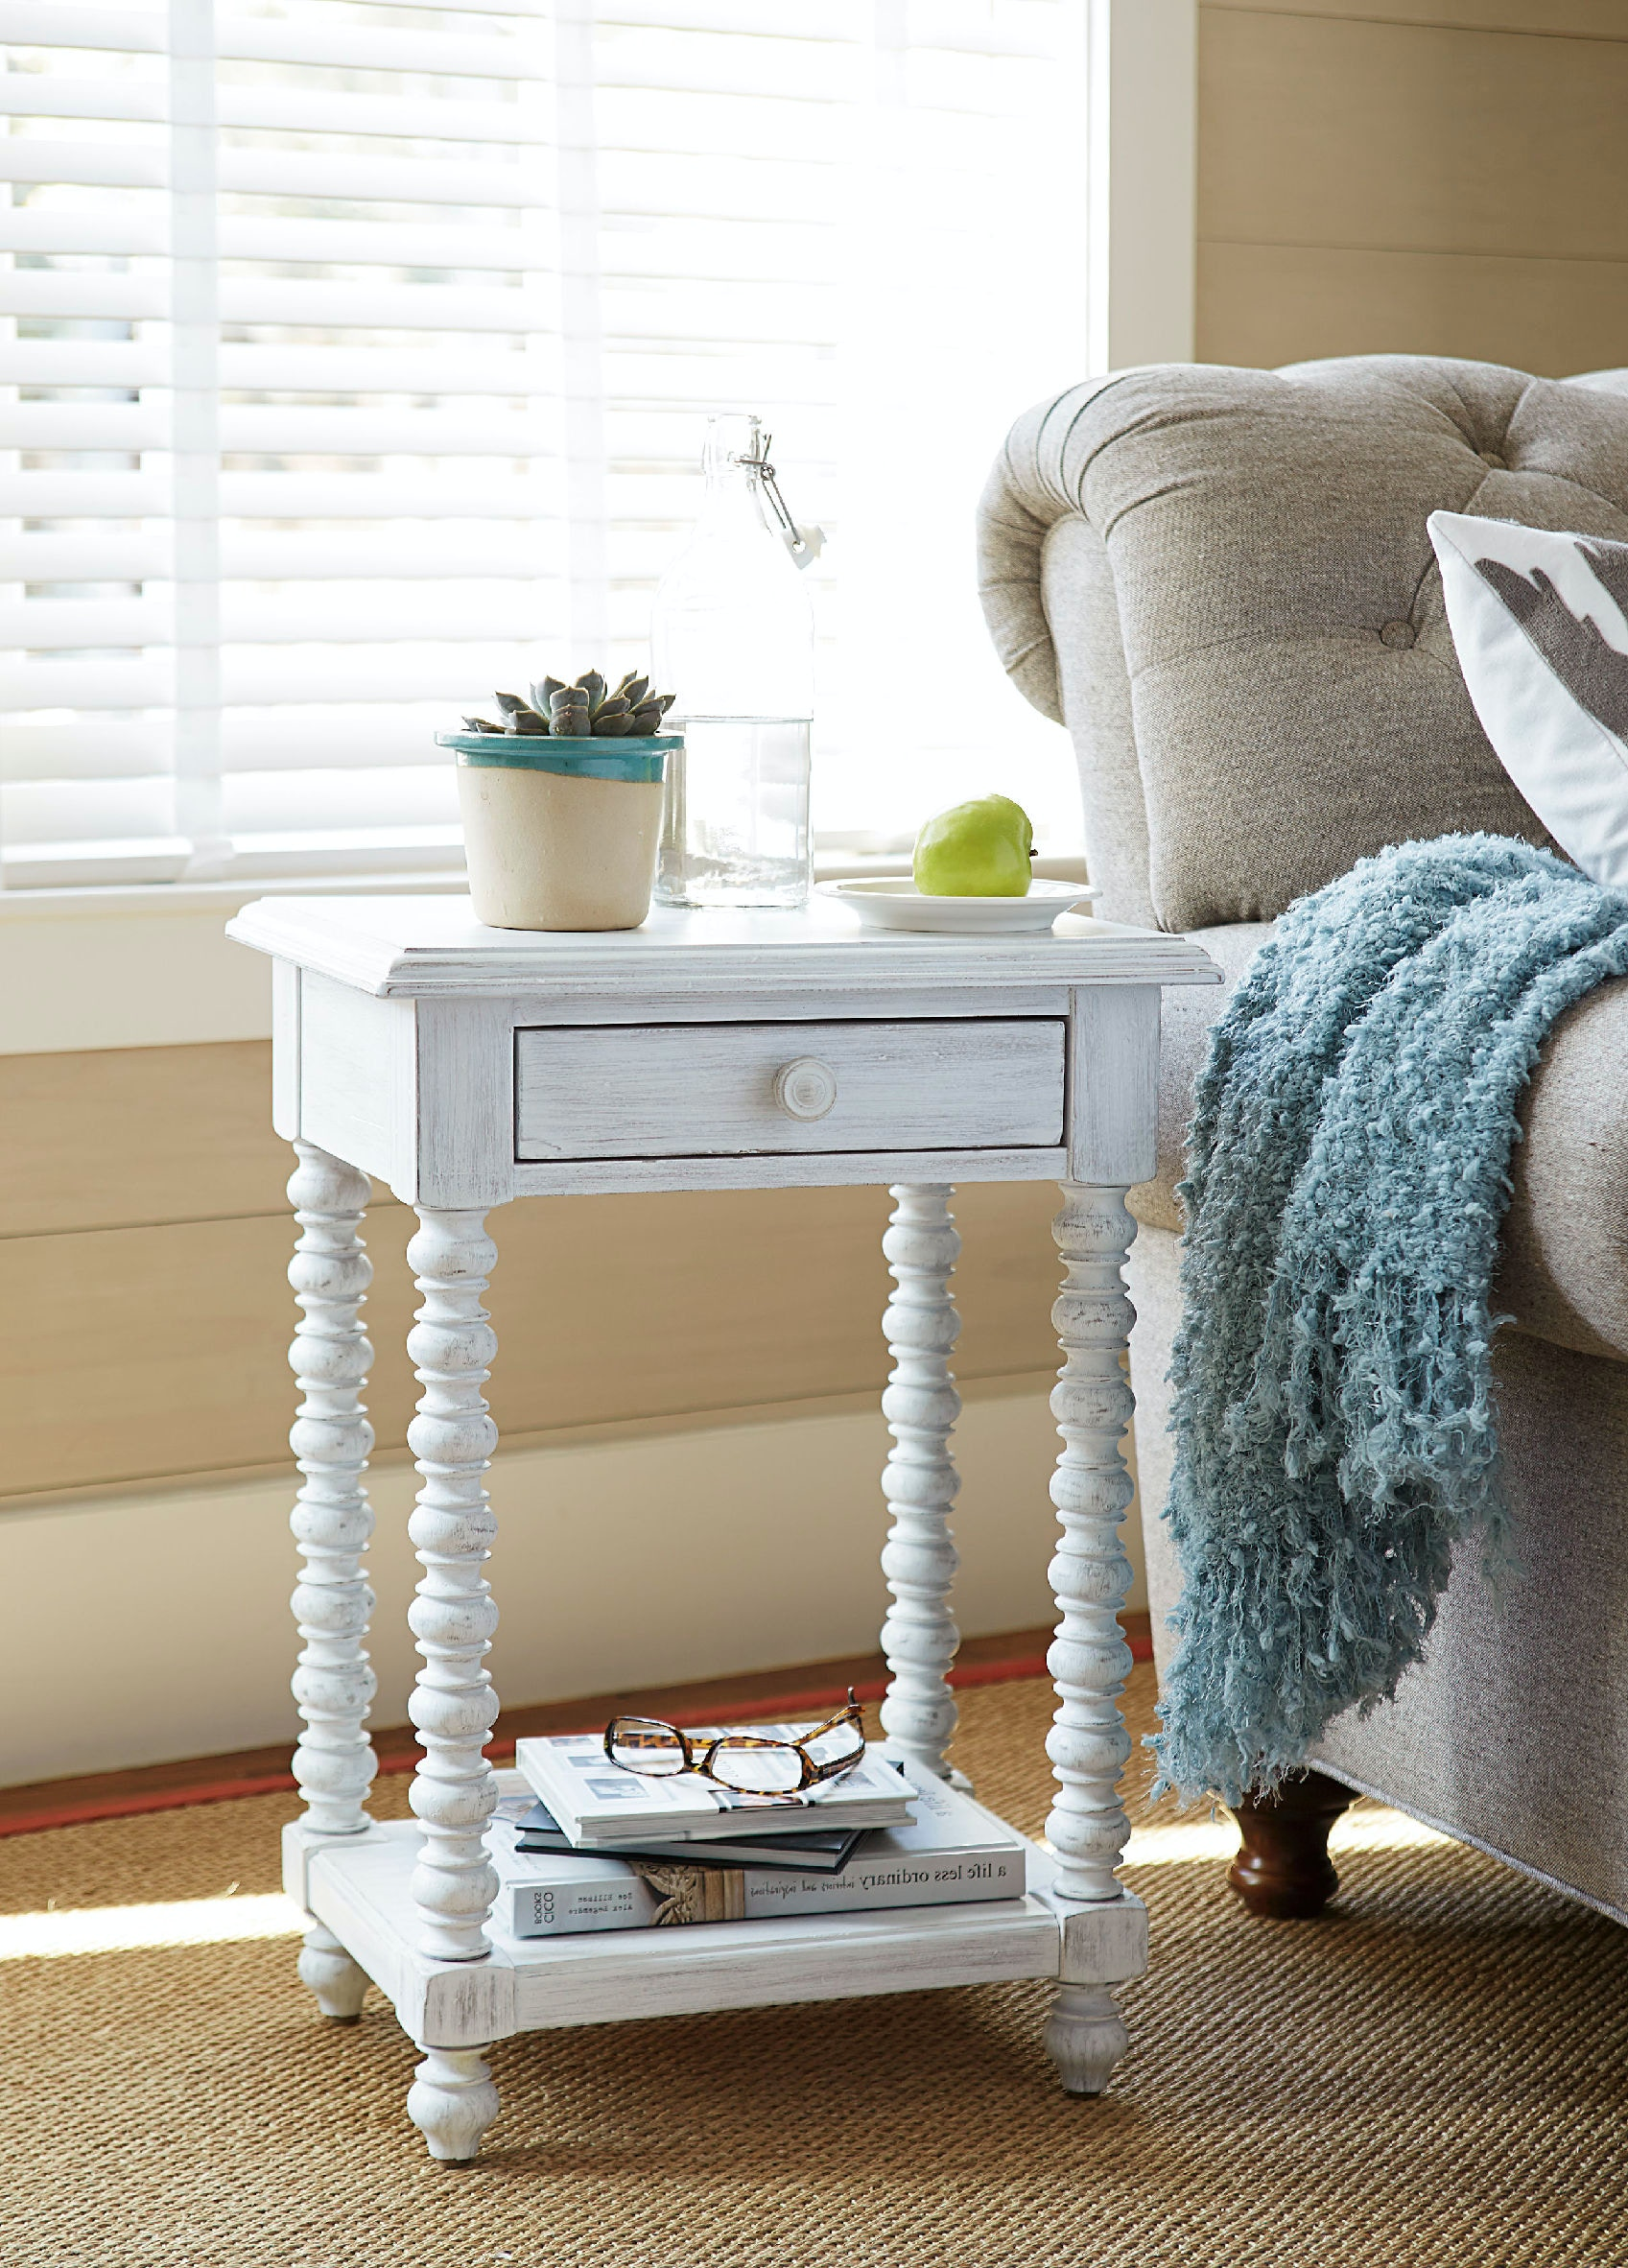 Paula Deen Dogwood Side Table ST:447793